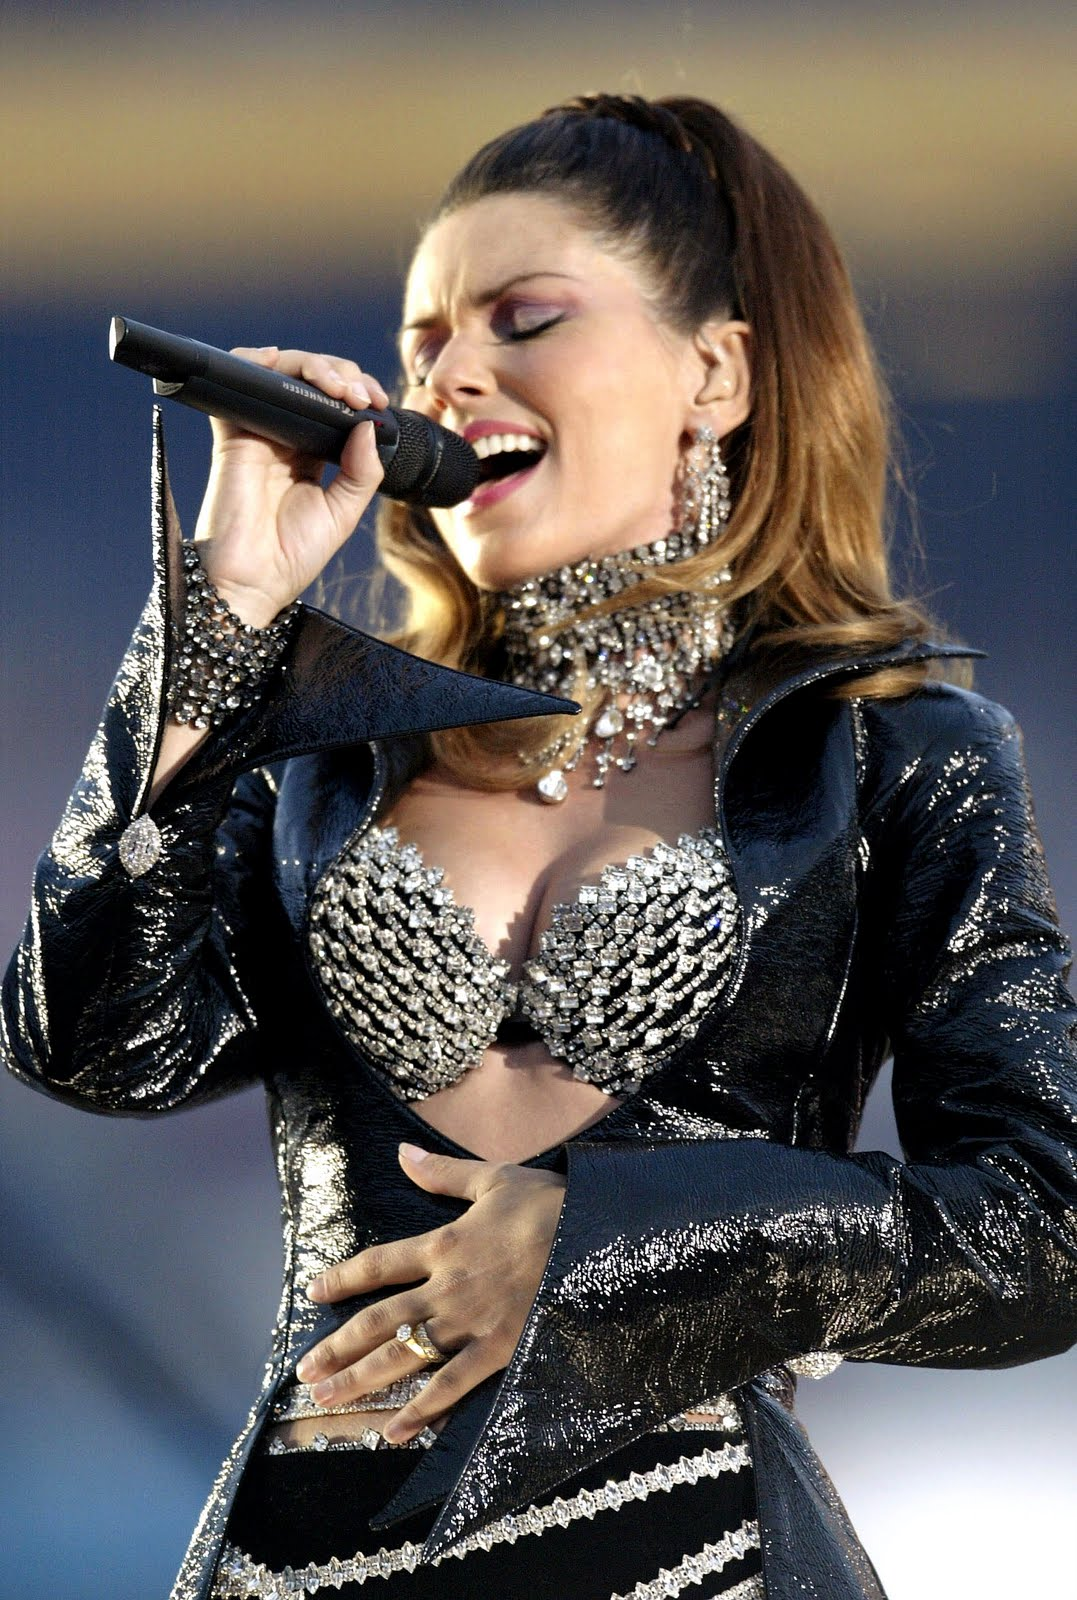 Shania Twain Airlie Beach Australia Pictures, Images & Photos